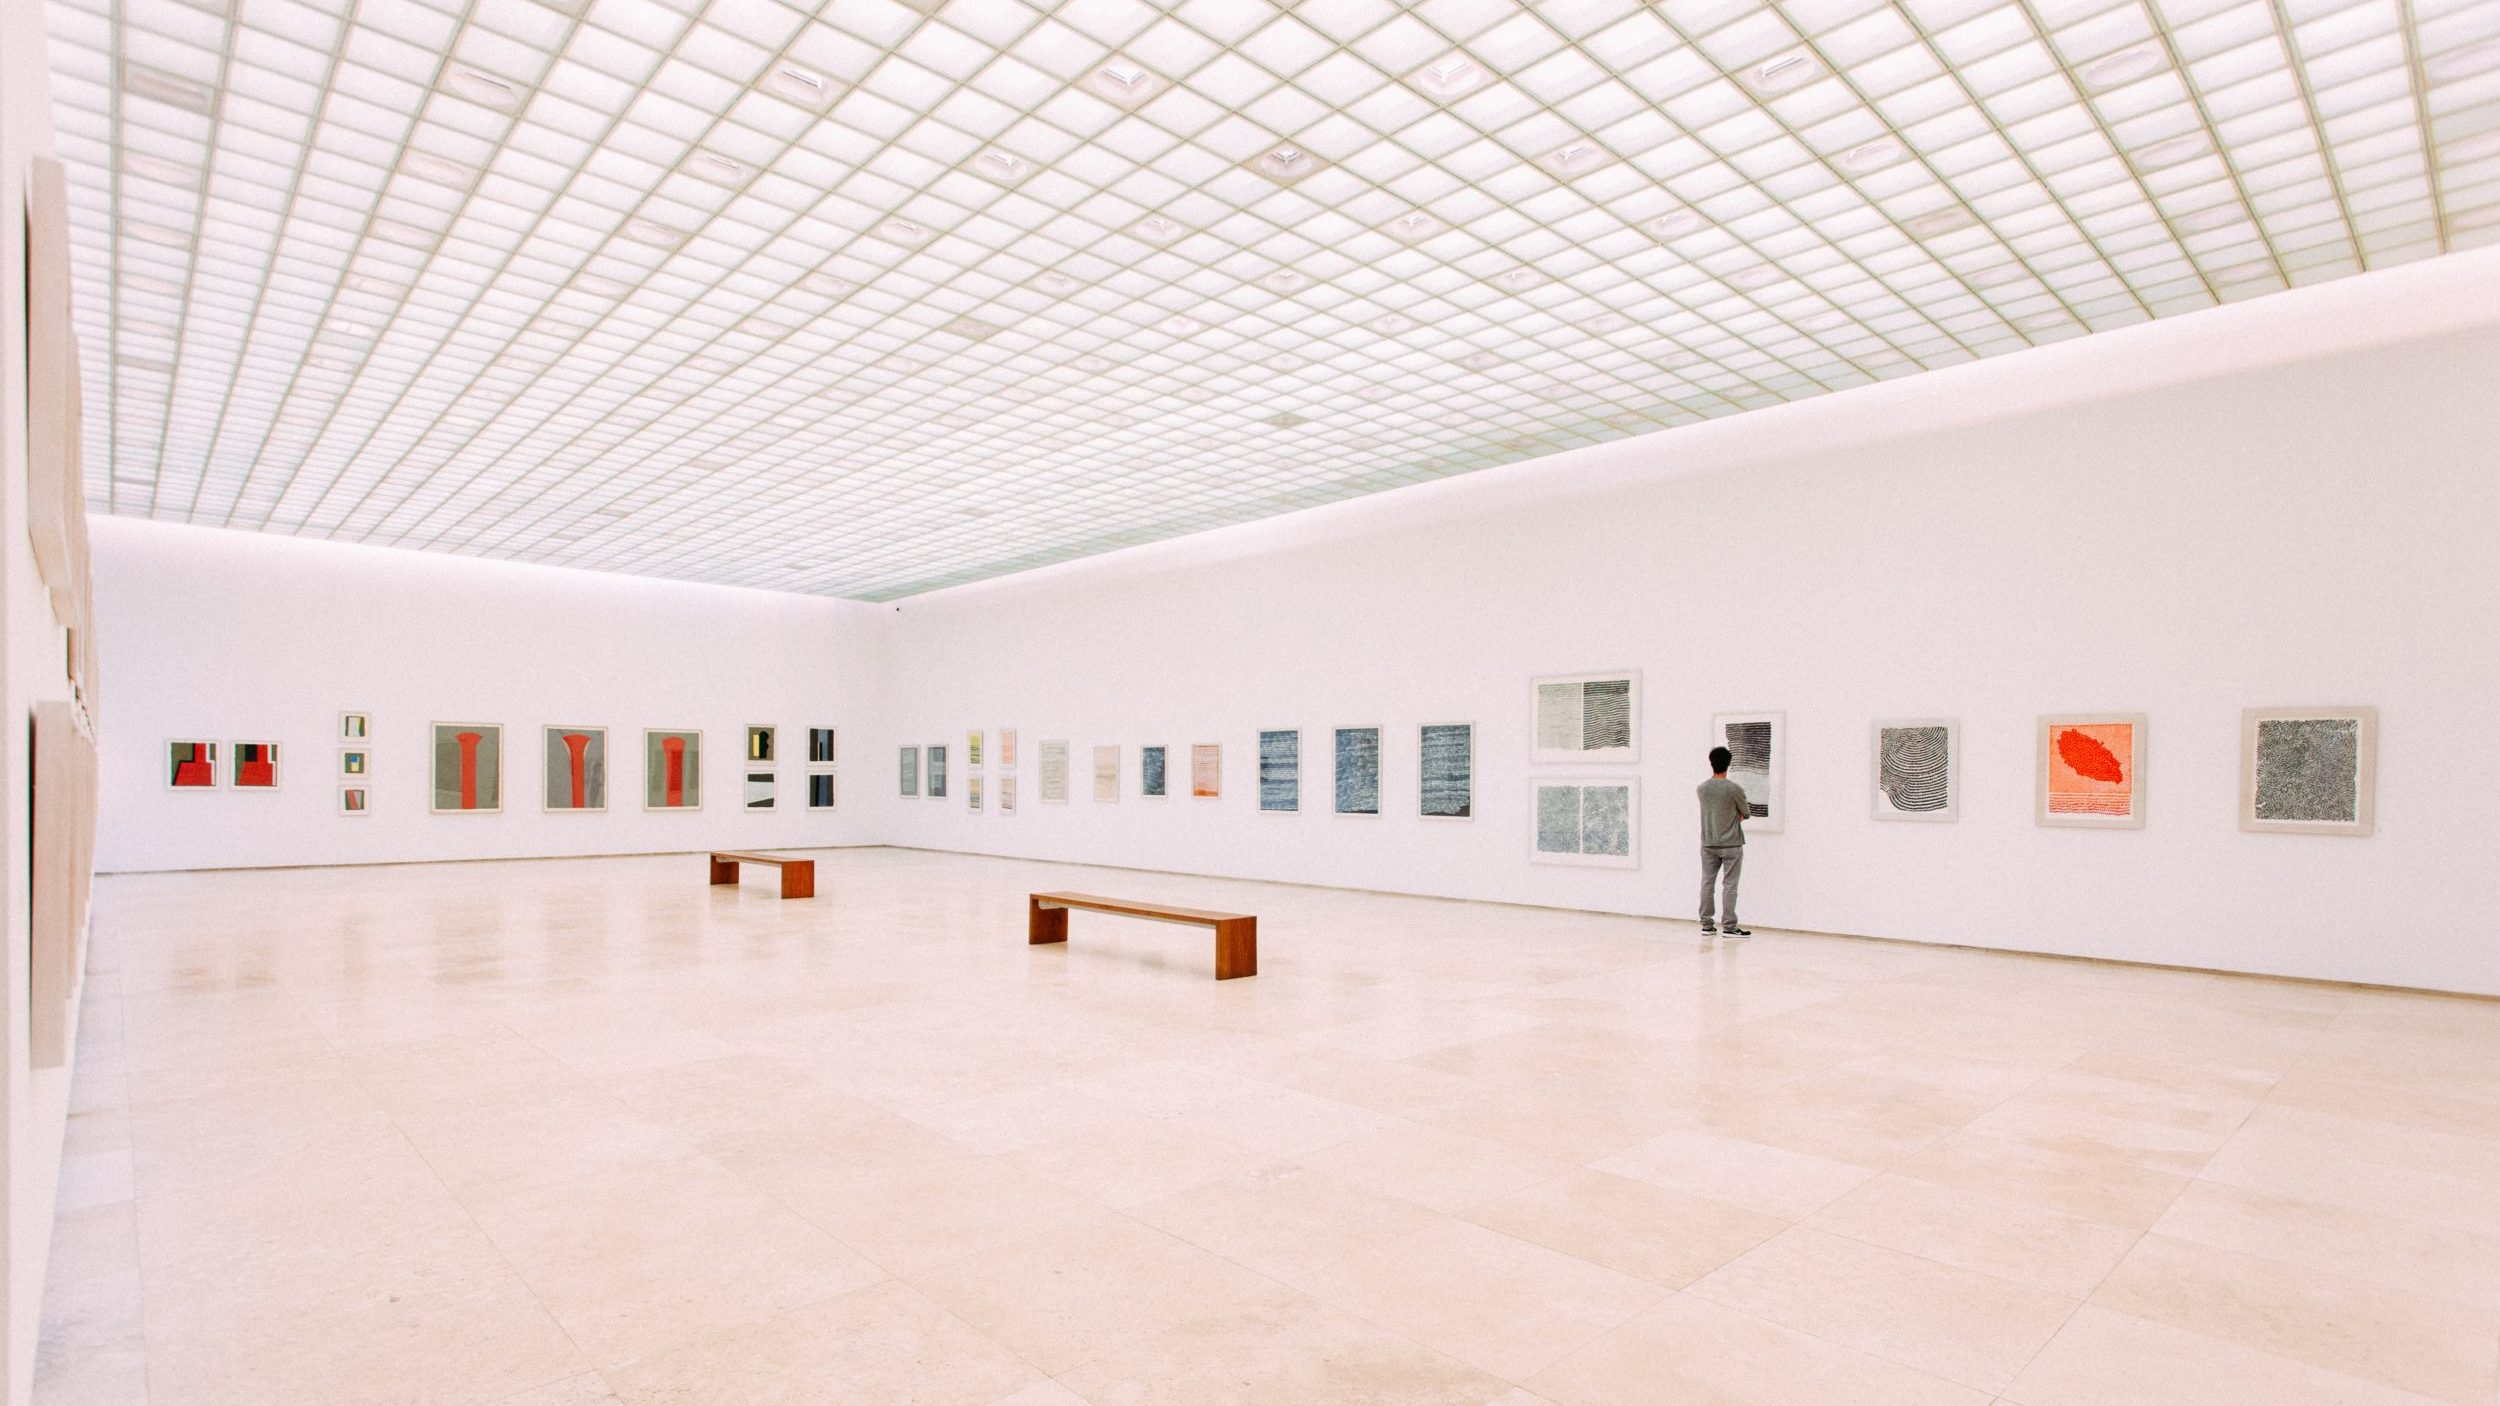 Wide shot of a museum gallery with paintings on display